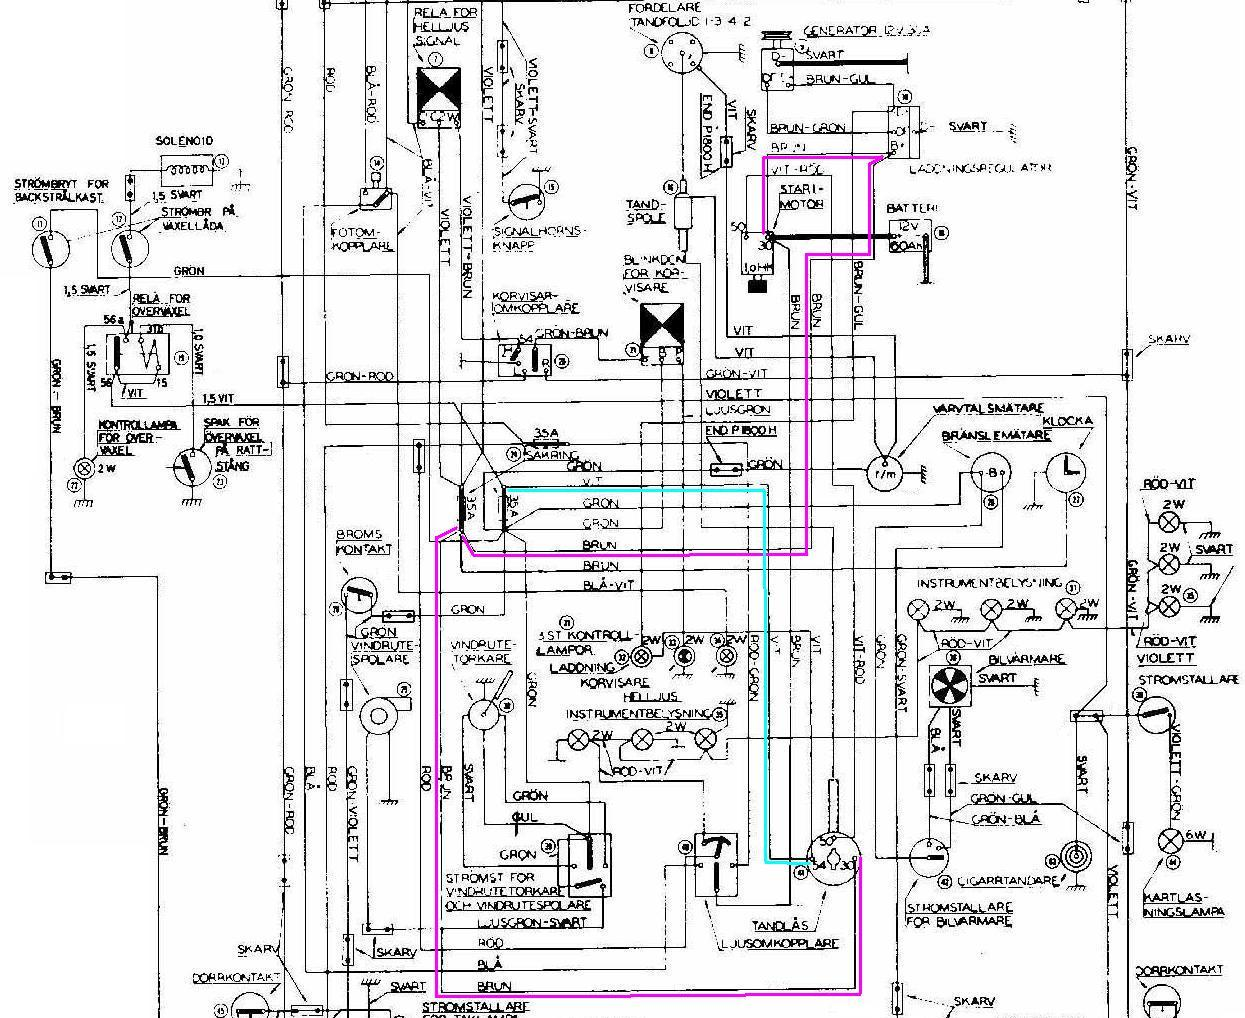 Wiring Diagram Volvo Amazon Opinions About Fuel System Moreover Electric Garage Heater Schematics Diagrams U2022 Rh Parntesis Co Semi Truck Pump